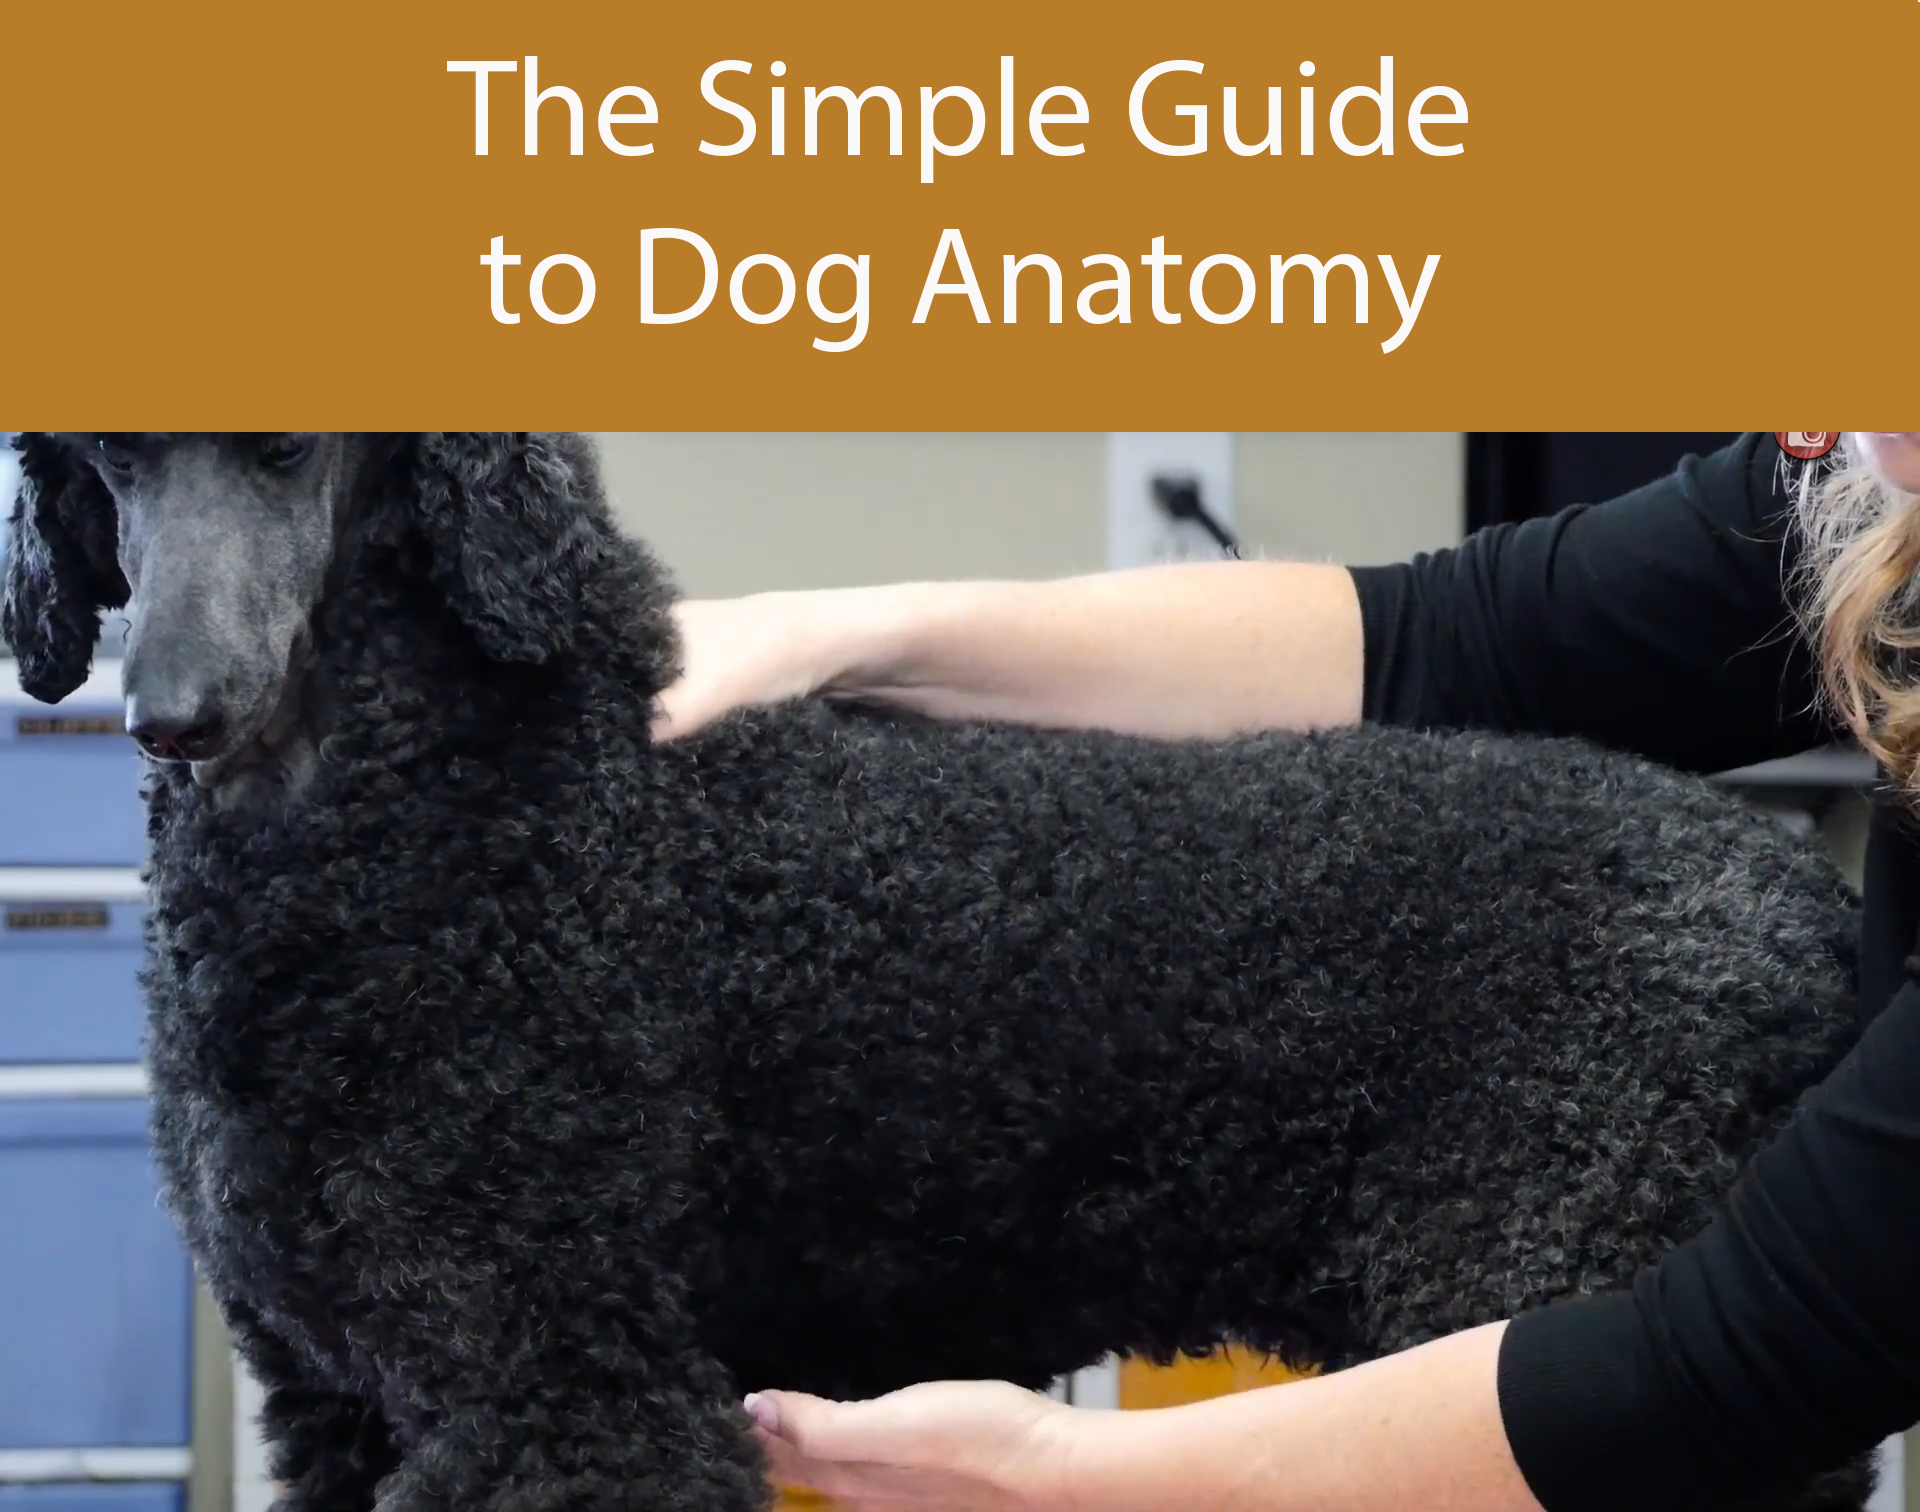 The Simple Guide to Dog Anatomy